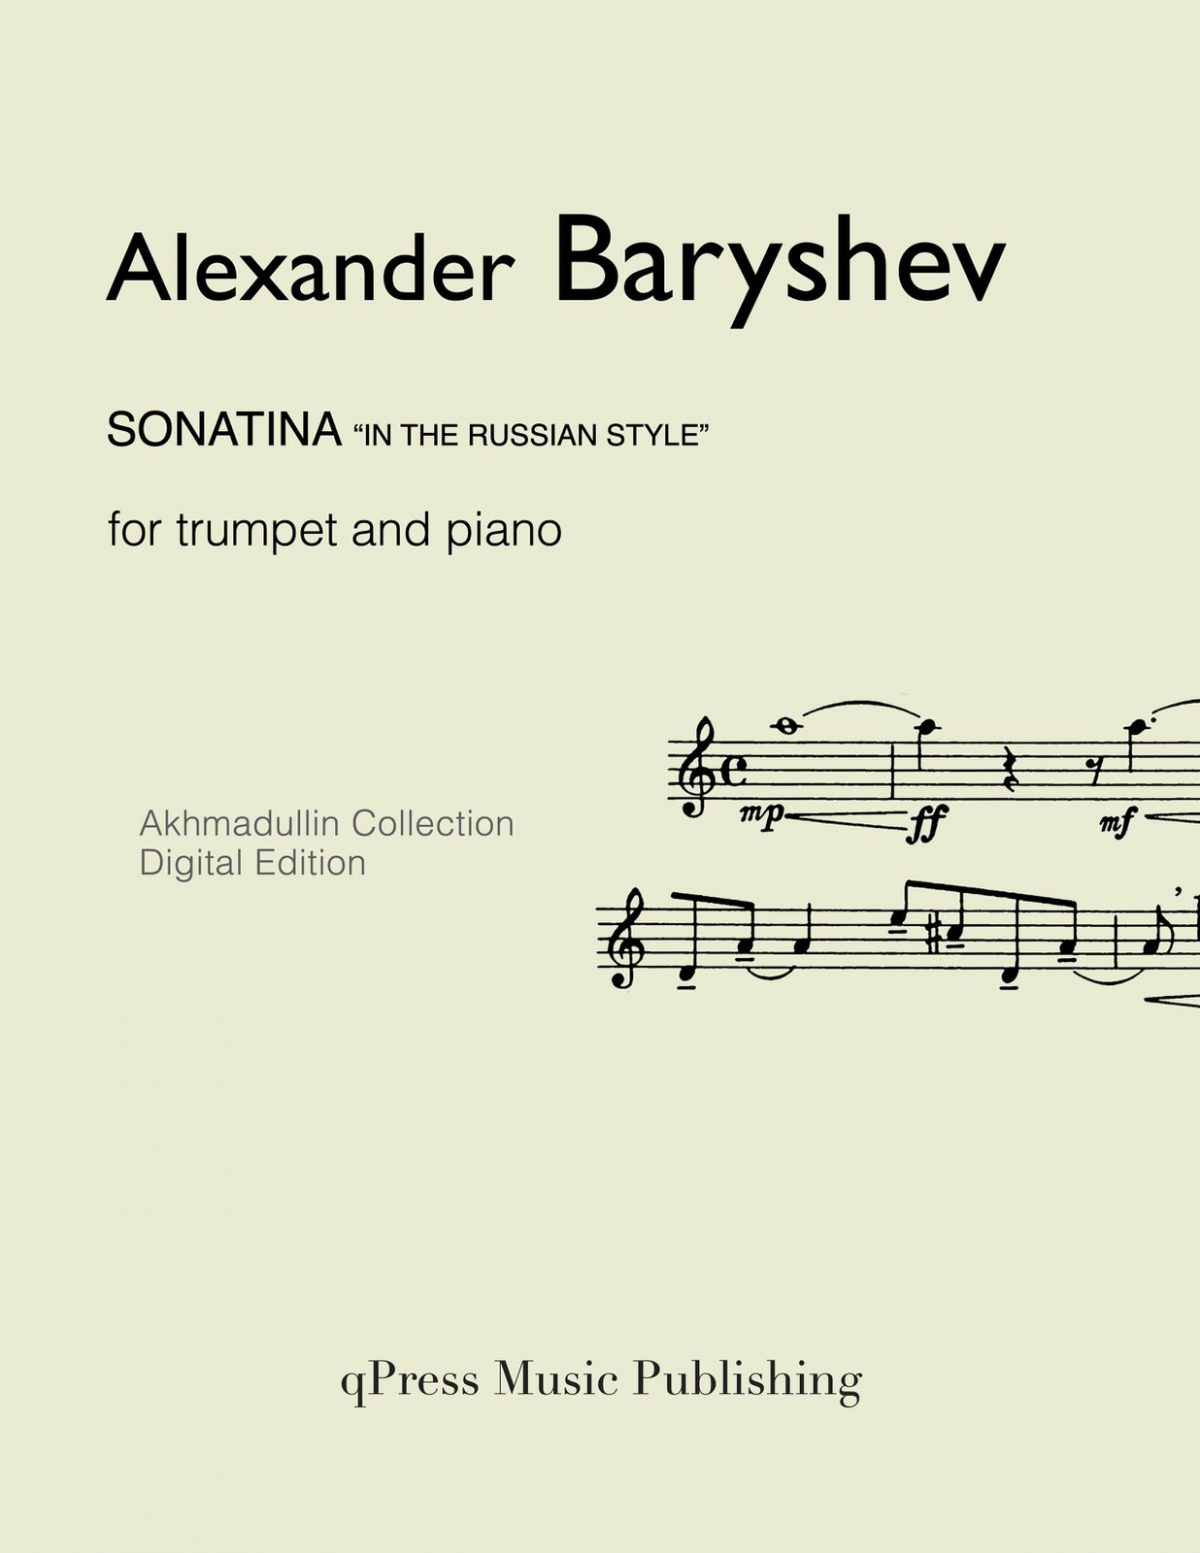 Baryshev, Sonatina in the Russian Style (Score and Part)-p01